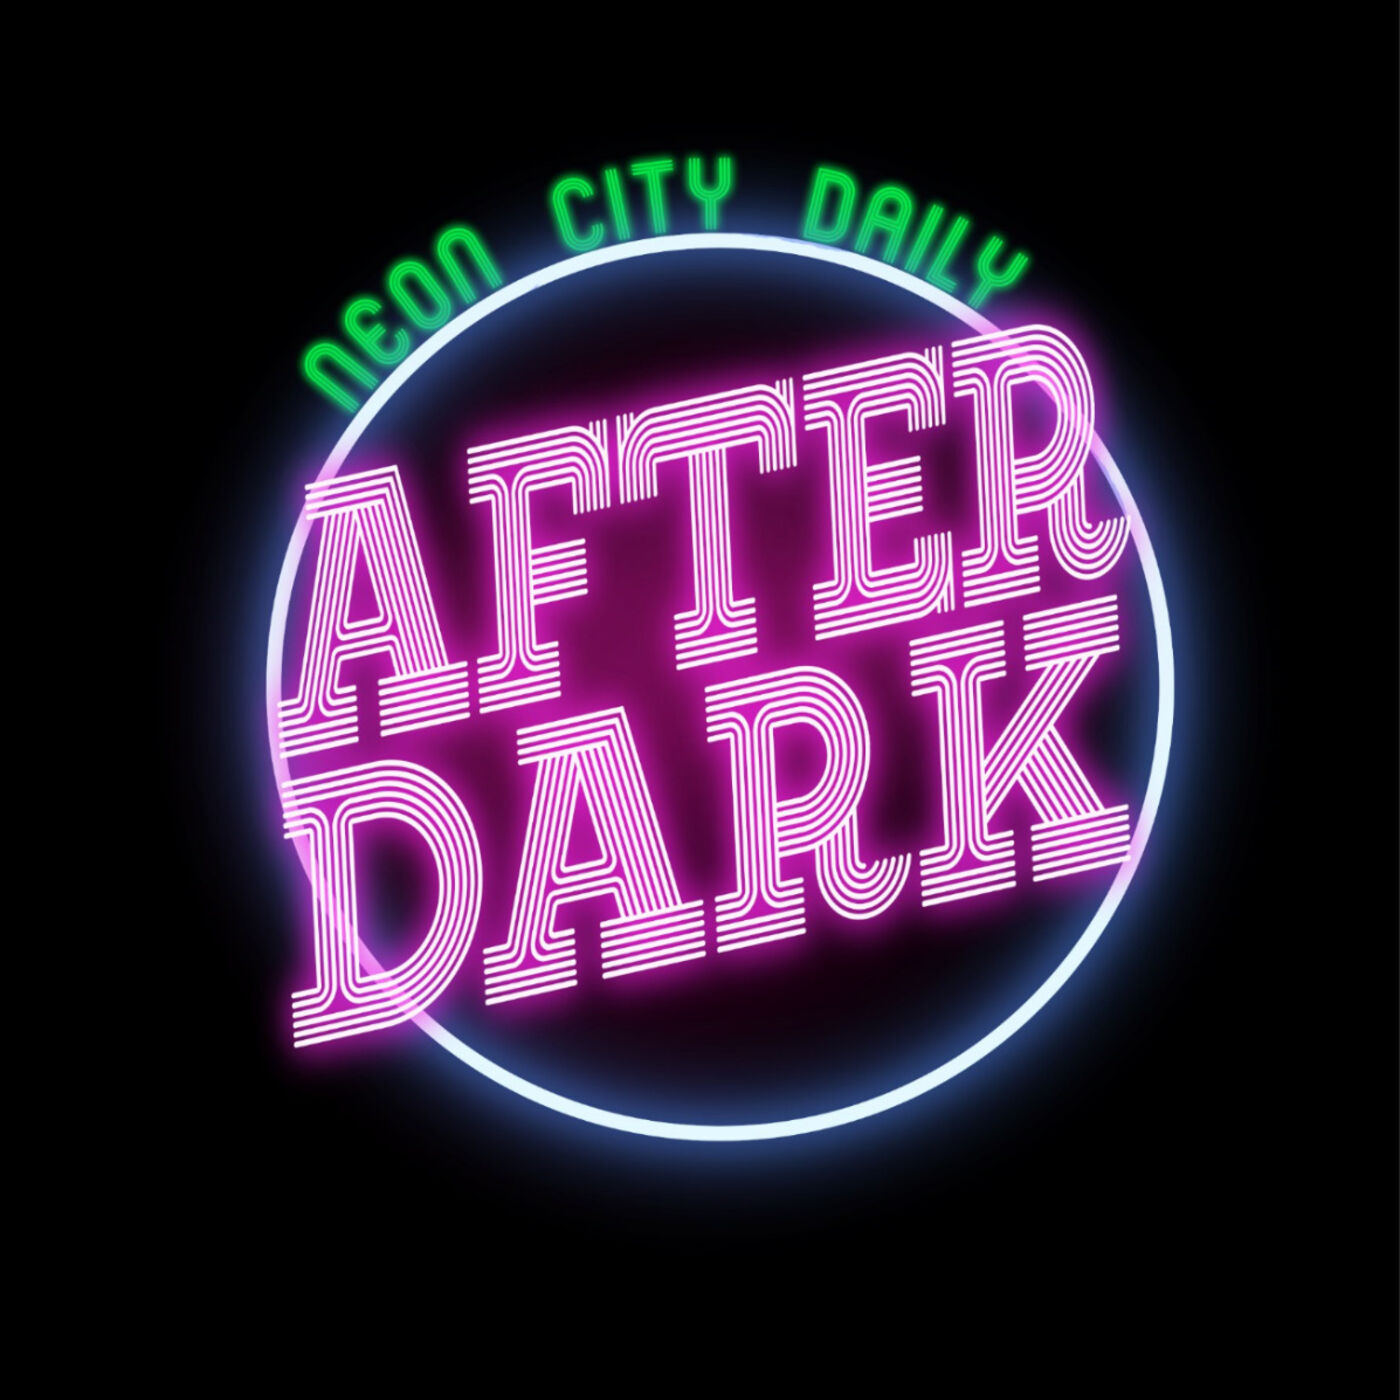 Neon City Daily After Dark: Episode Ten